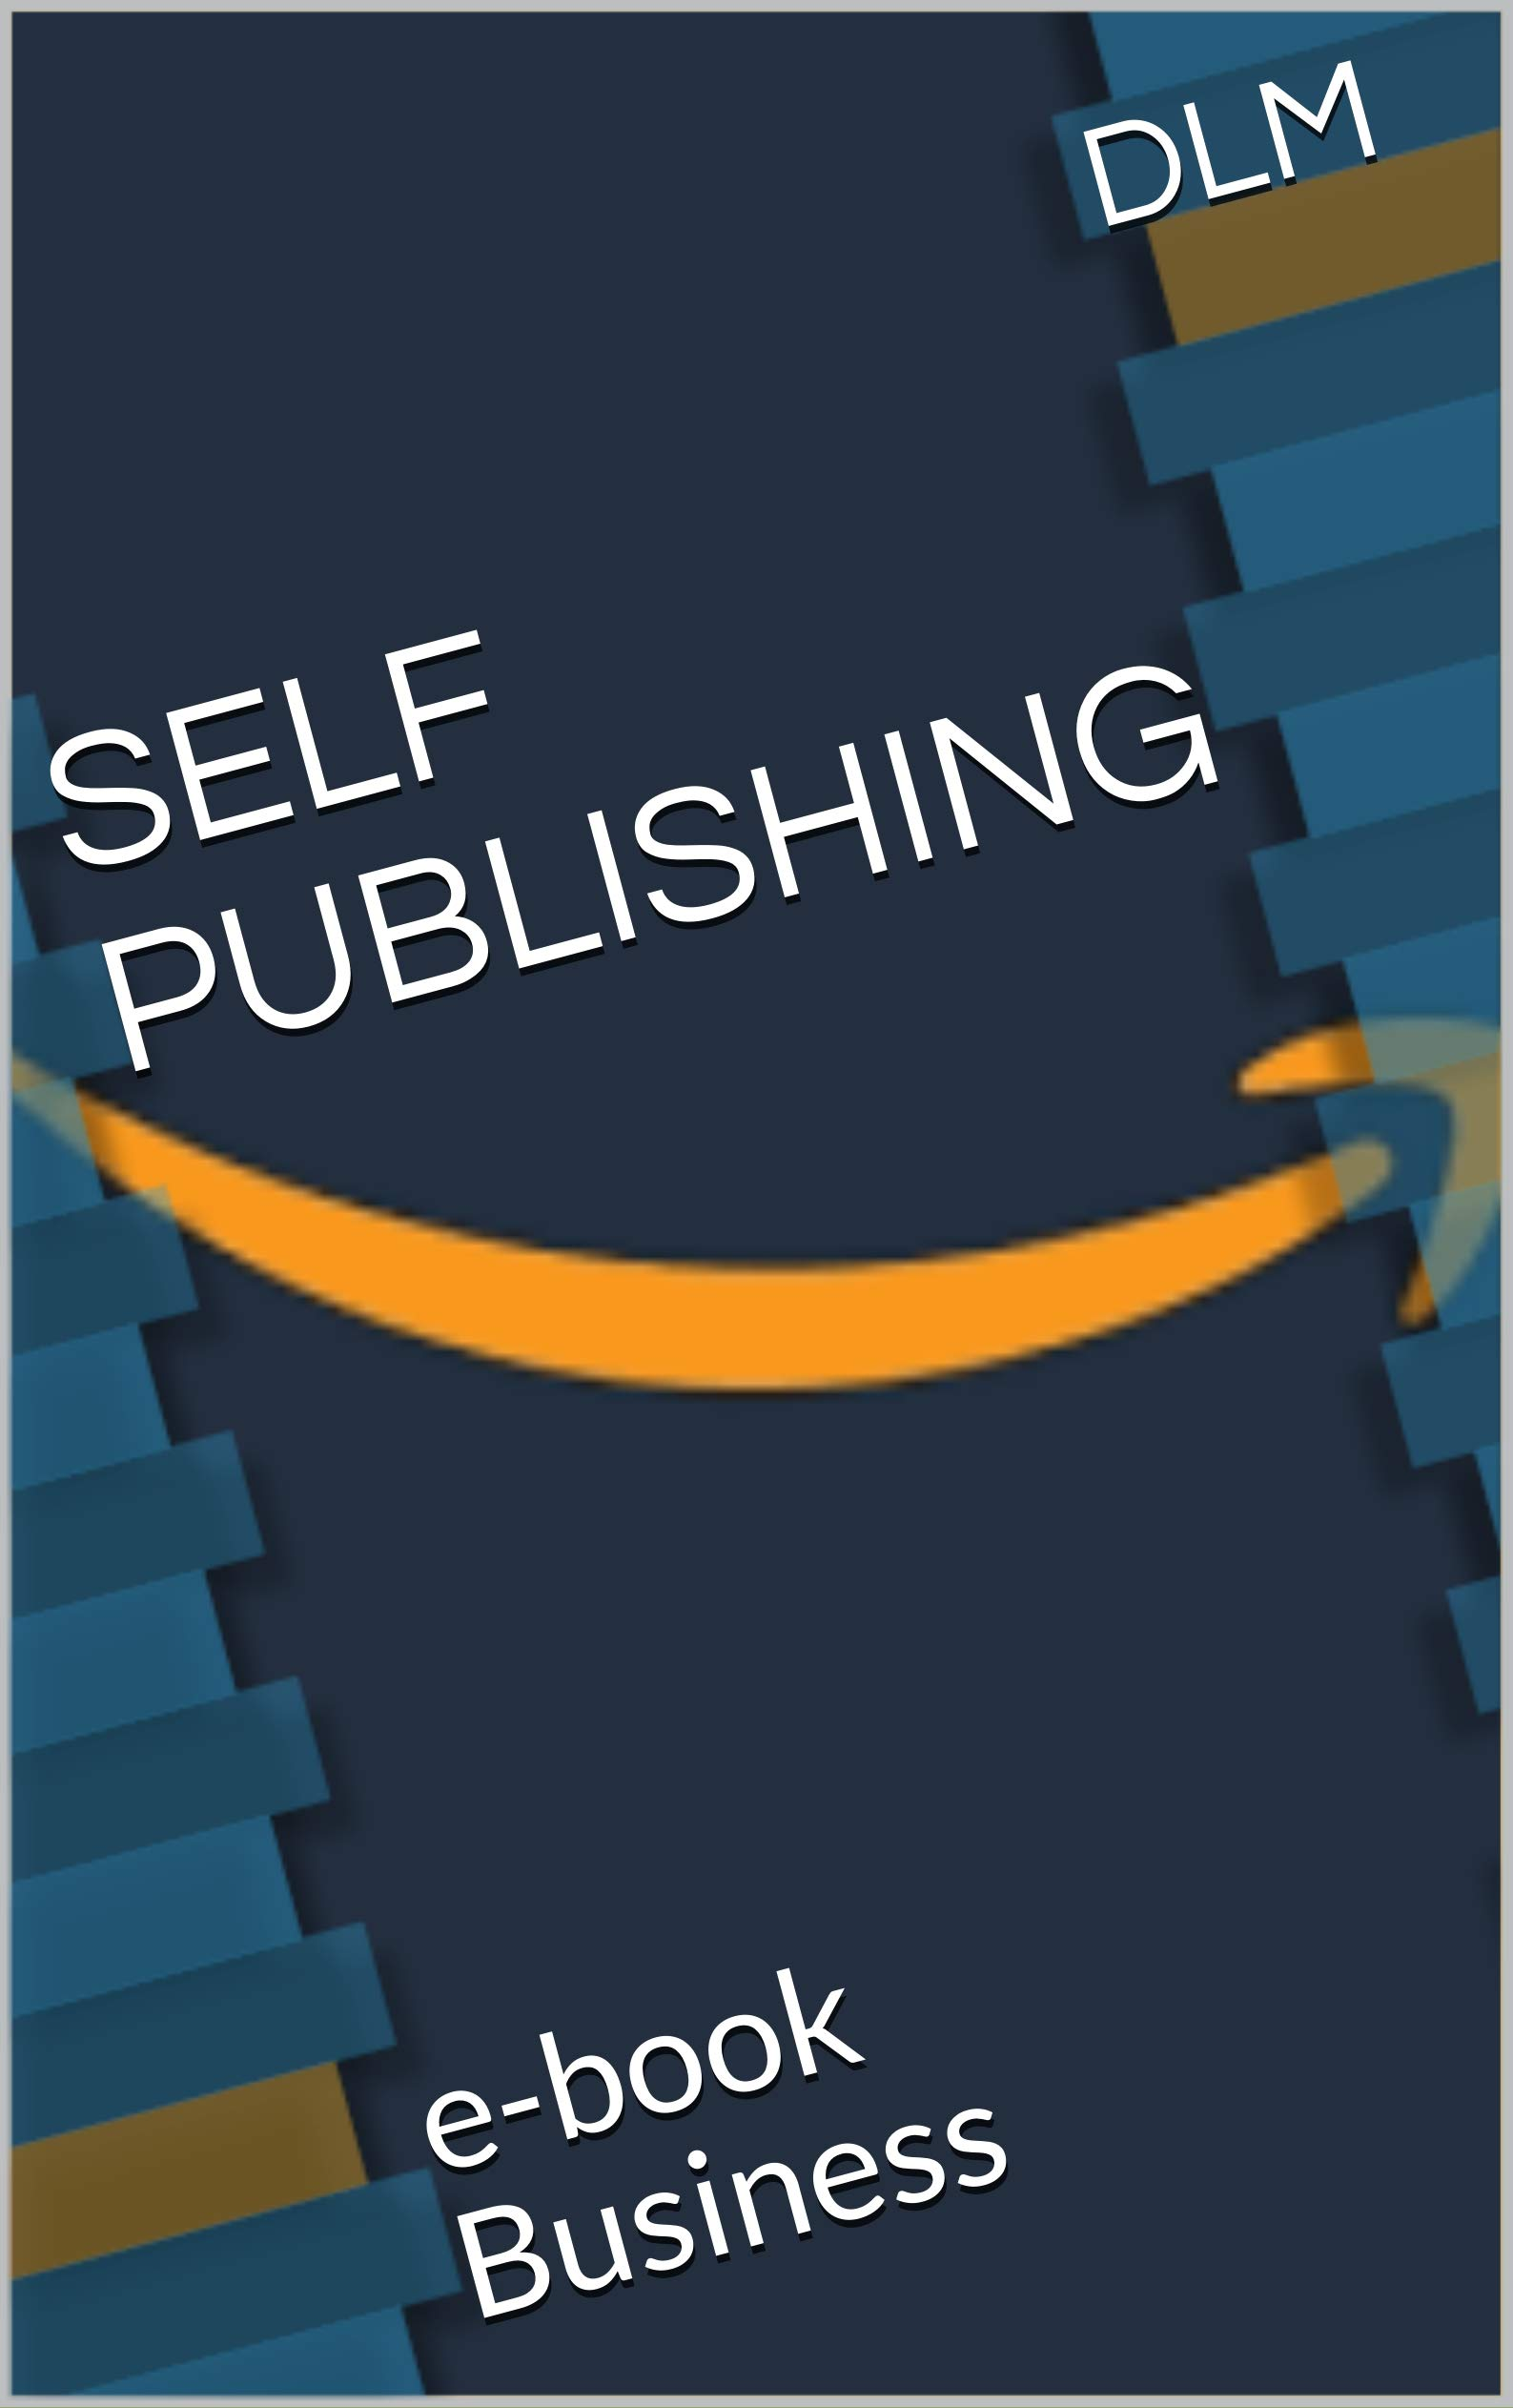 SELF PUBLISHING: e-book Business (Italian Edition)